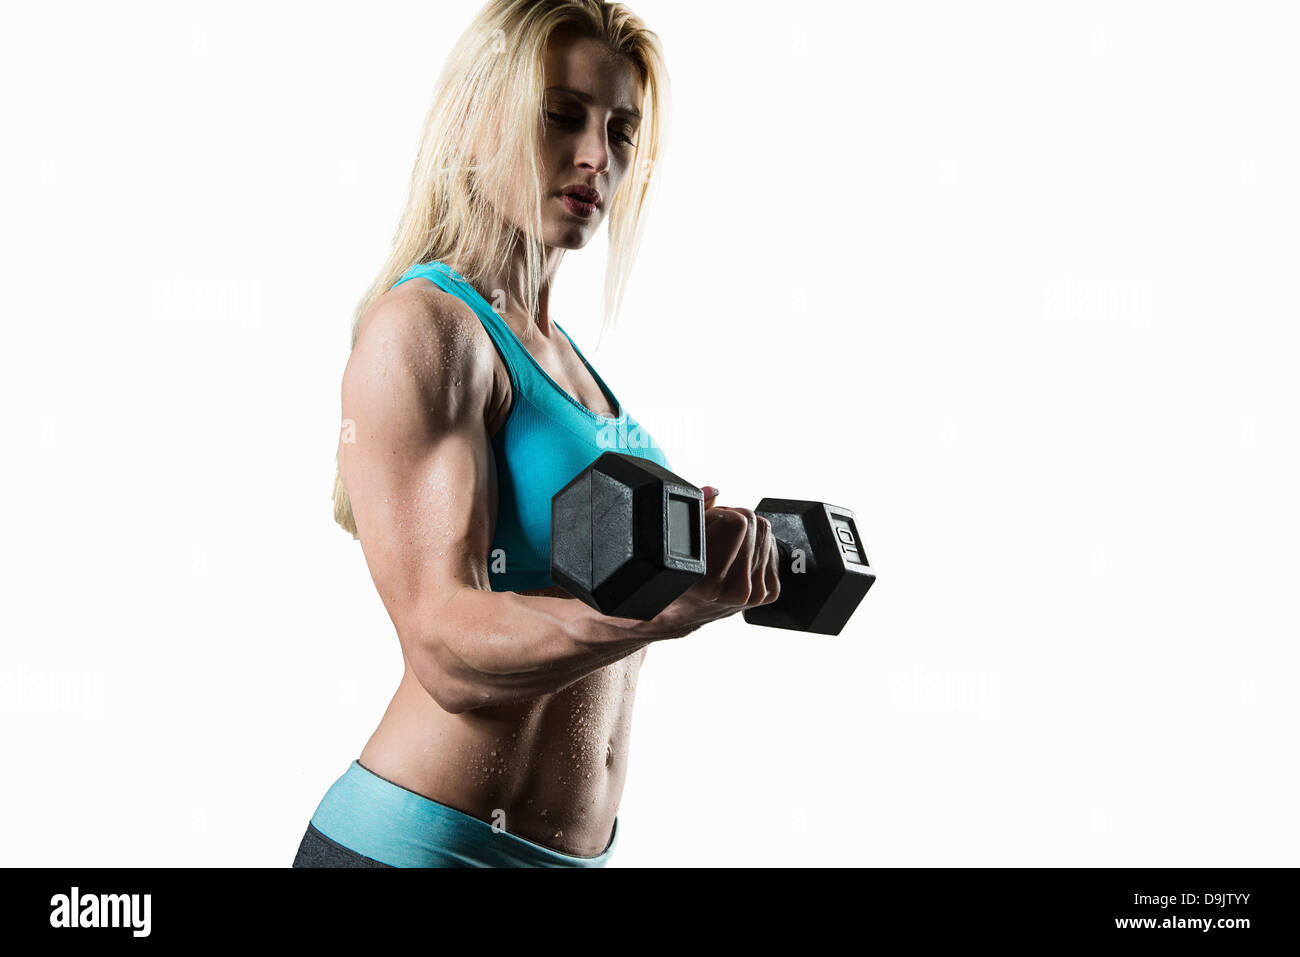 Jeune femme effectuant des biceps, studio shot Photo Stock